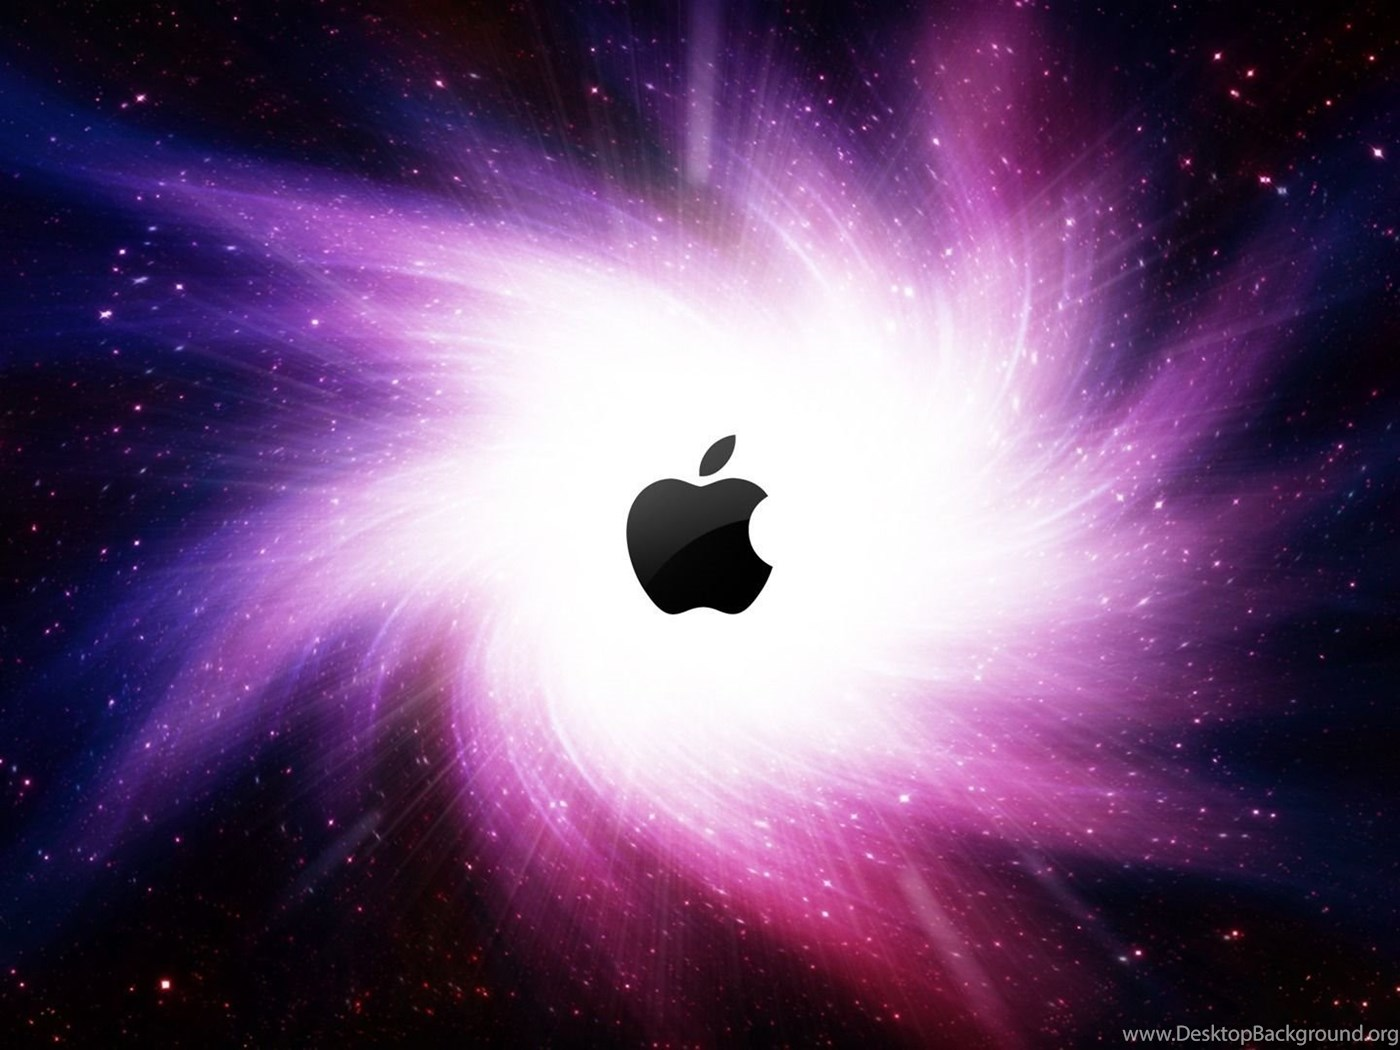 Apple In The Galaxy Wallpapers Computer Wallpapers Desktop Background